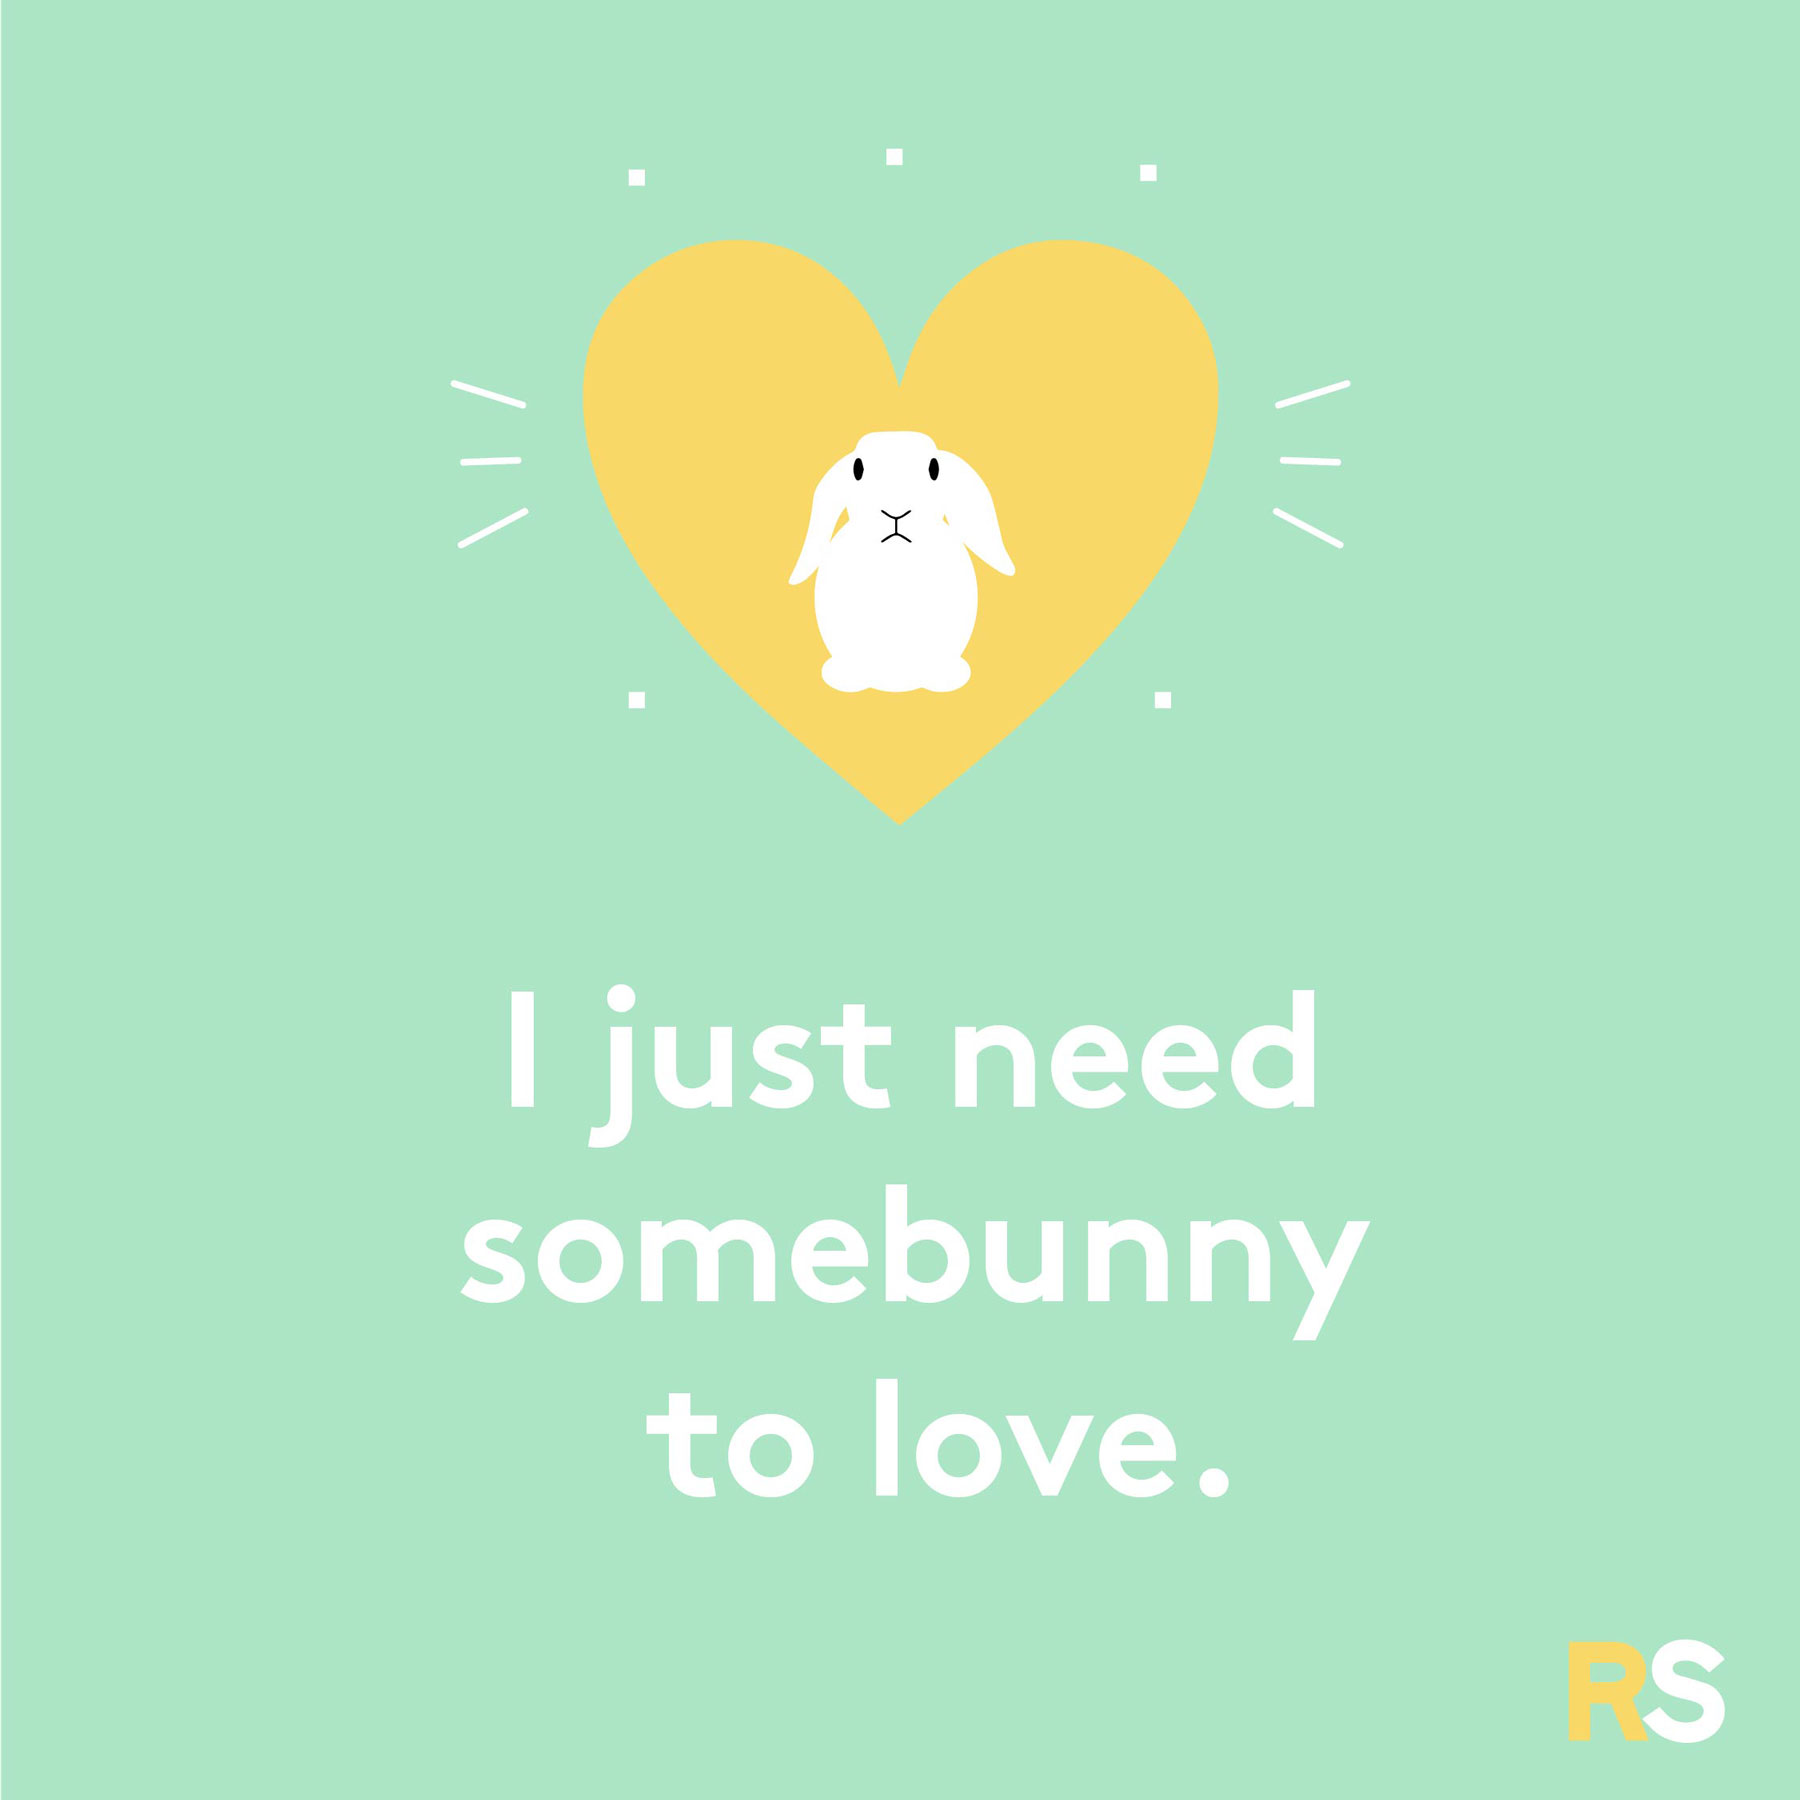 Easter quotes, captions, and messages - I just need somebunny to love.